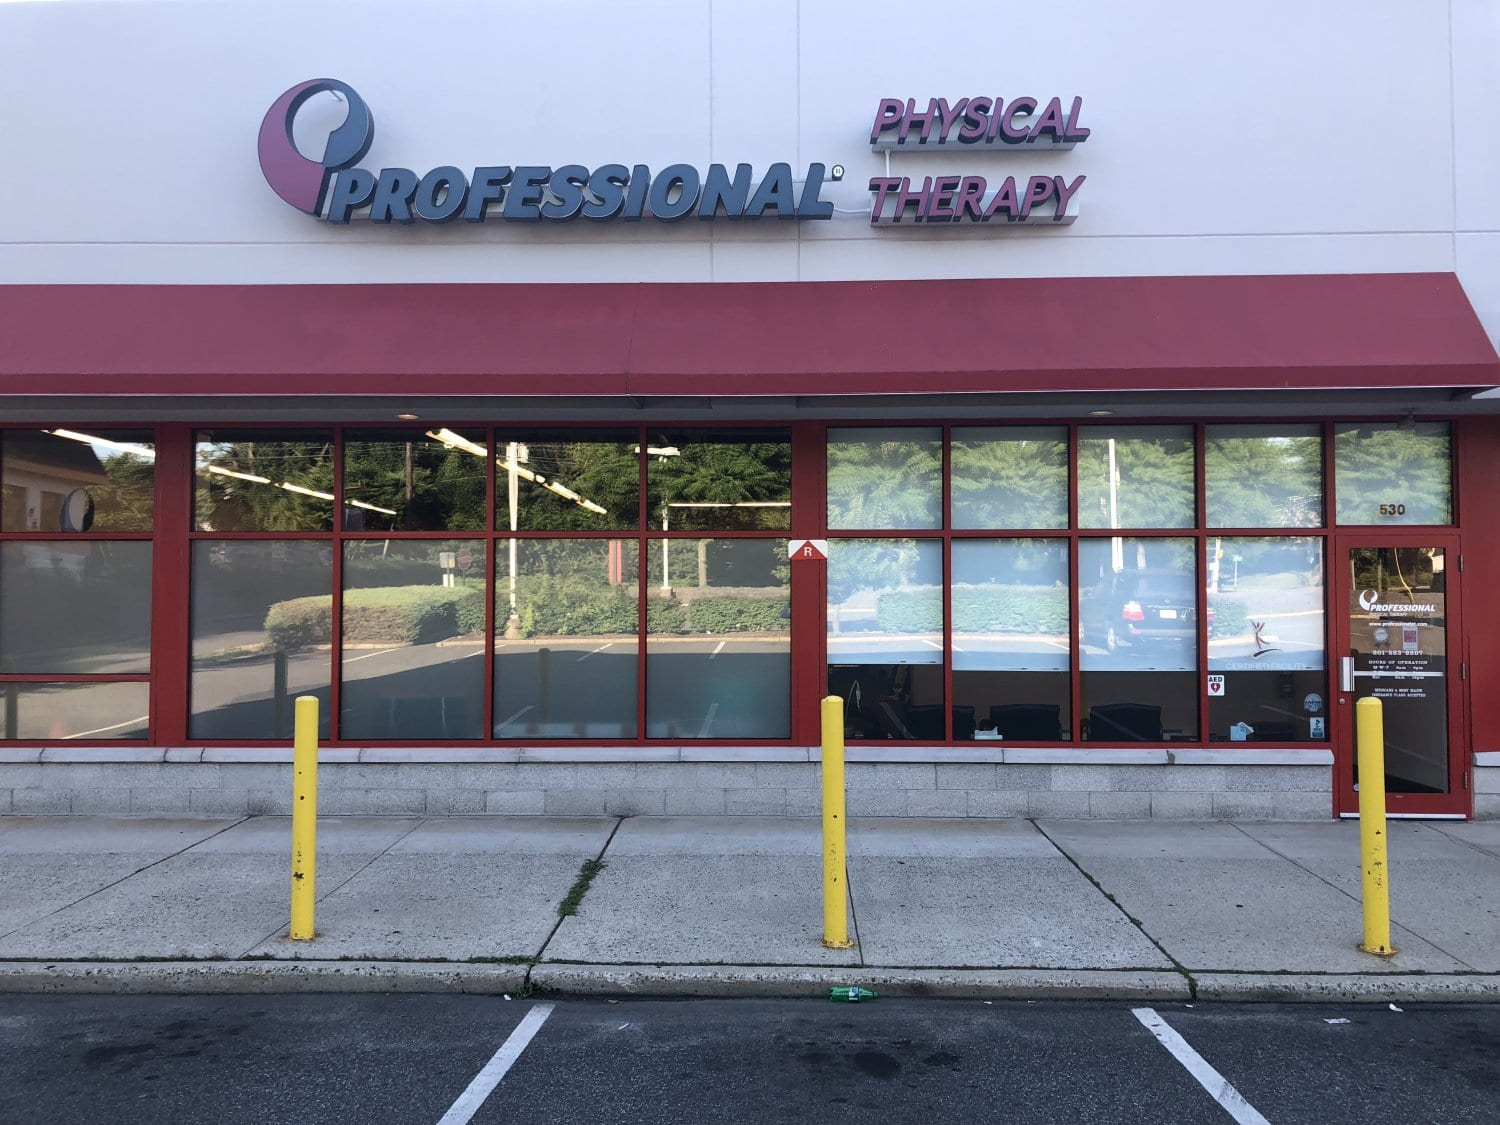 This is an image of the exterior of our physical therapy clinic in River Edge, New Jersey.